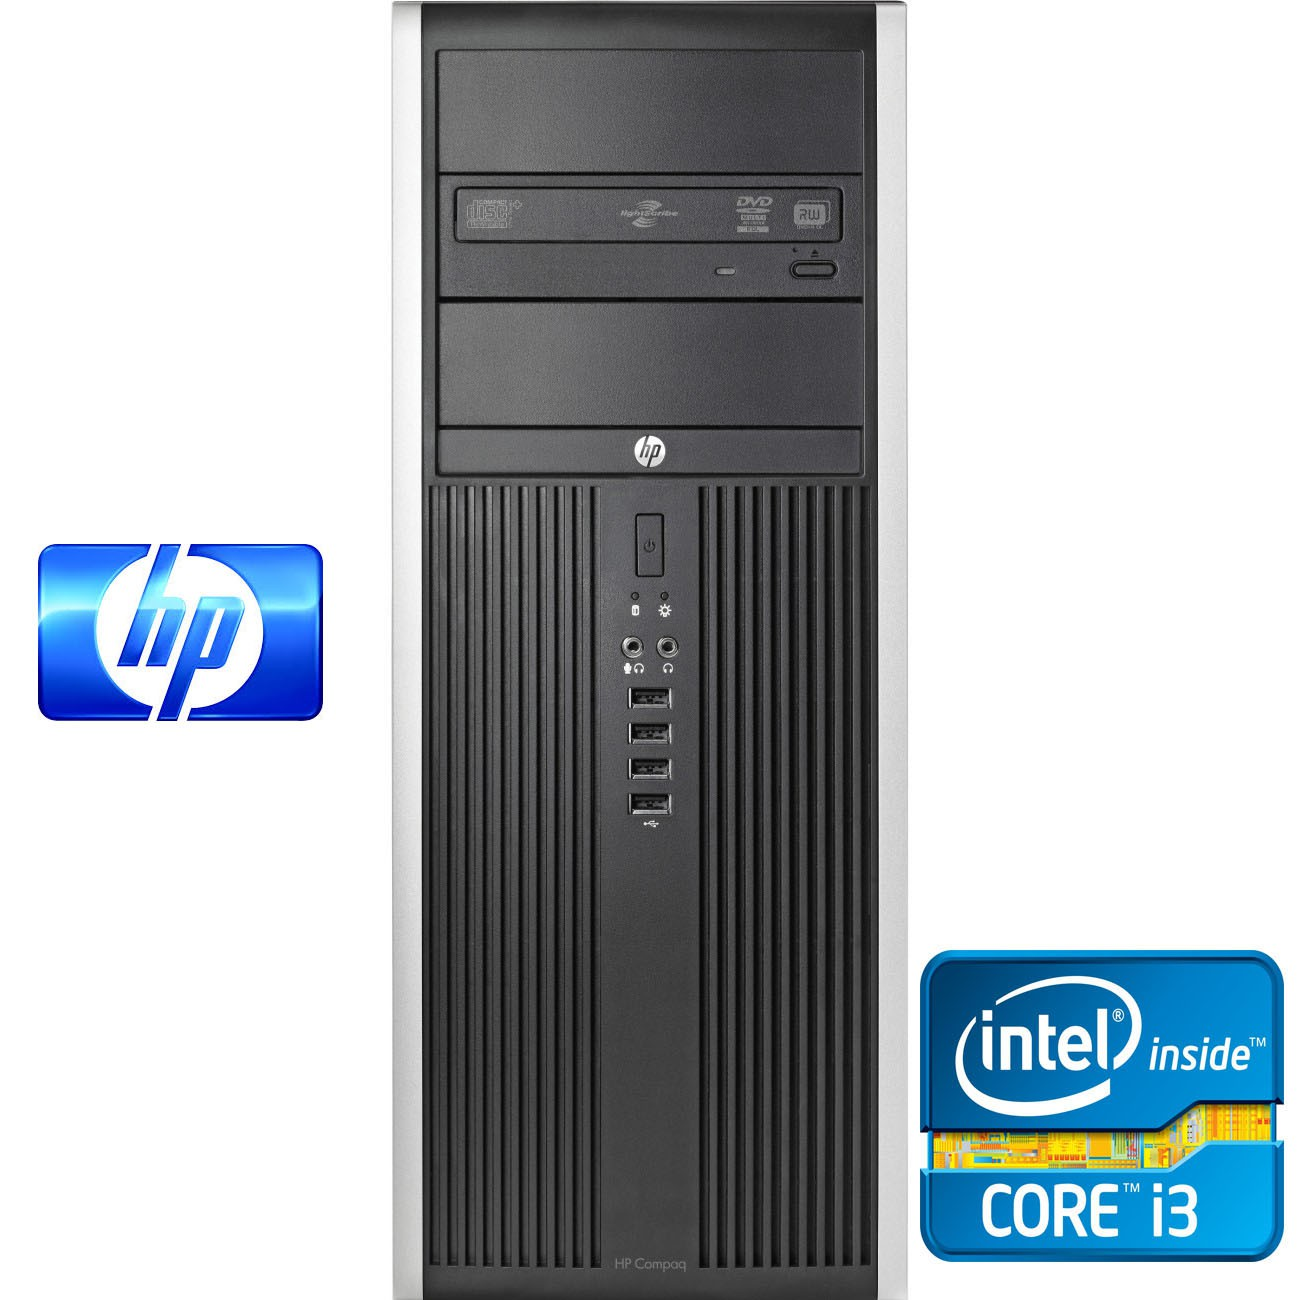 ordinateur hp fixe beautiful hp elite cmt pc de bureau fixe ghz go go with ordinateur hp fixe. Black Bedroom Furniture Sets. Home Design Ideas